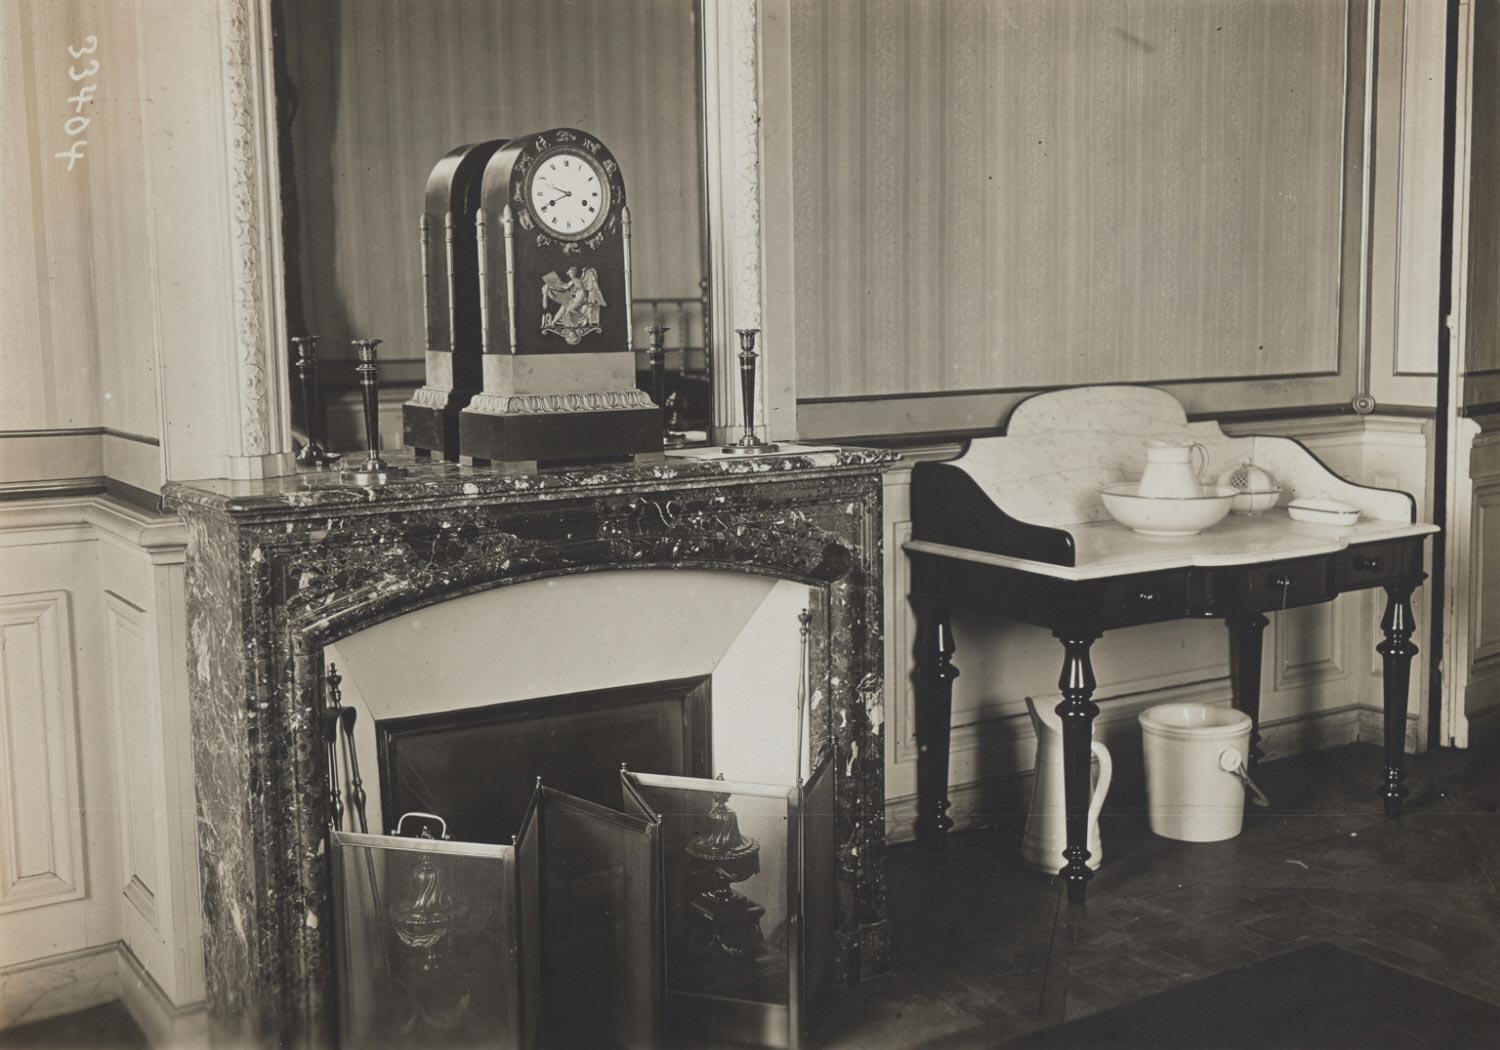 Congress of Versailles: The Washstand in a Corner of the Bedroom of the President